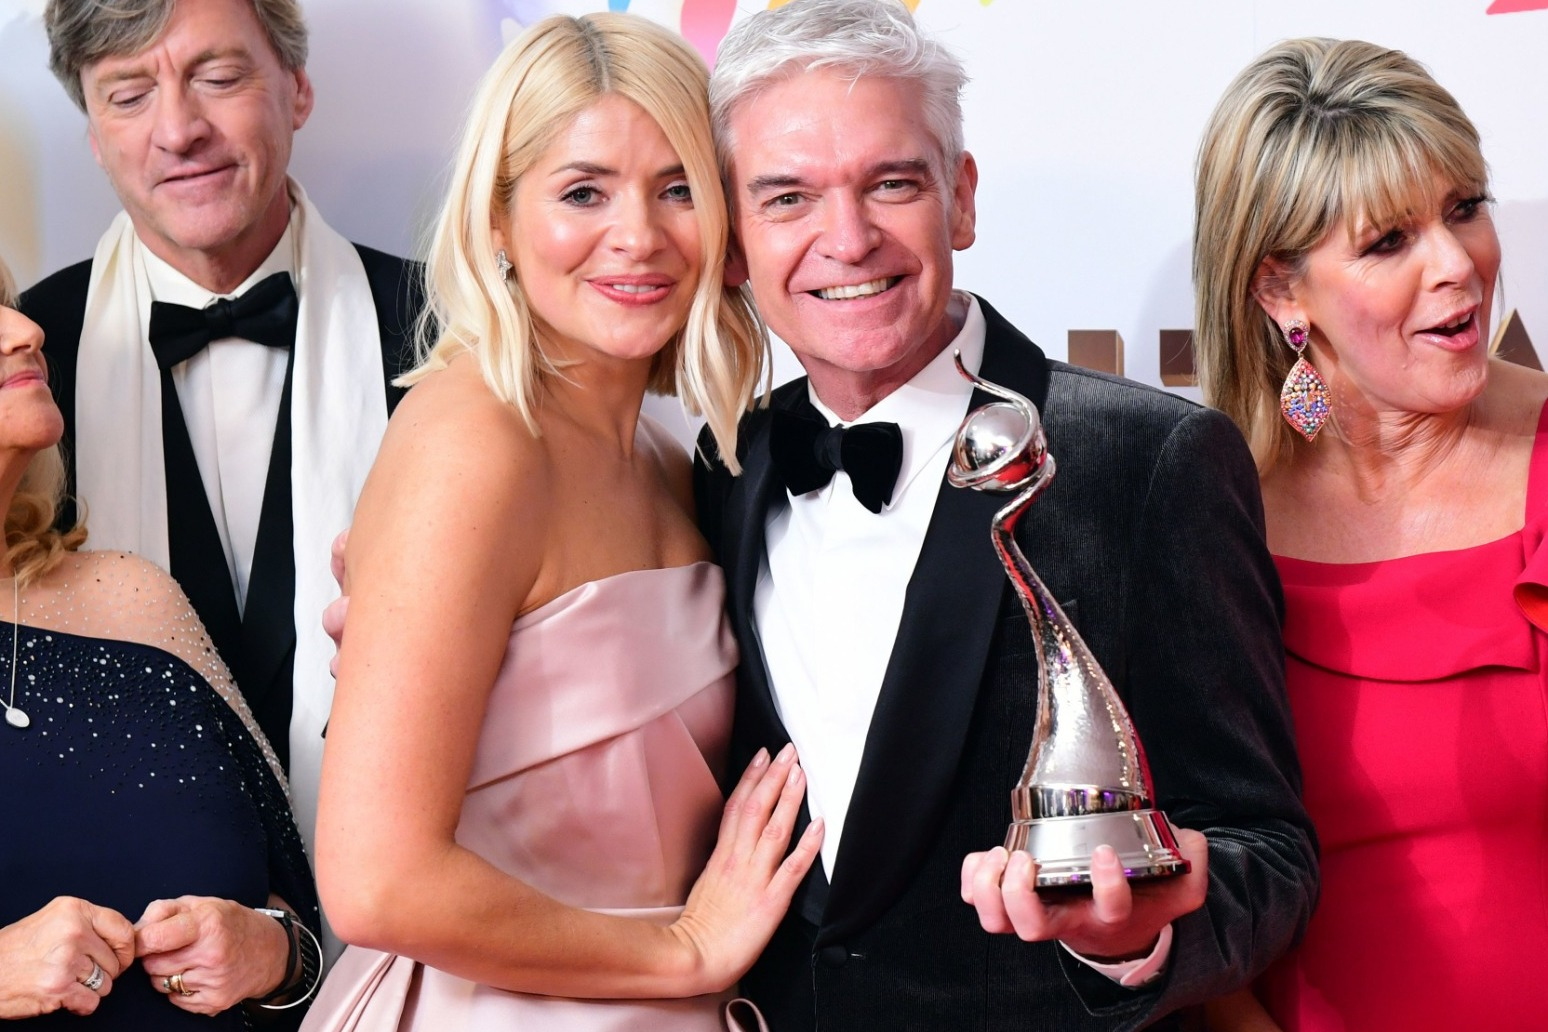 Phillip Schofield: I have been coming to terms with the fact that I am gay